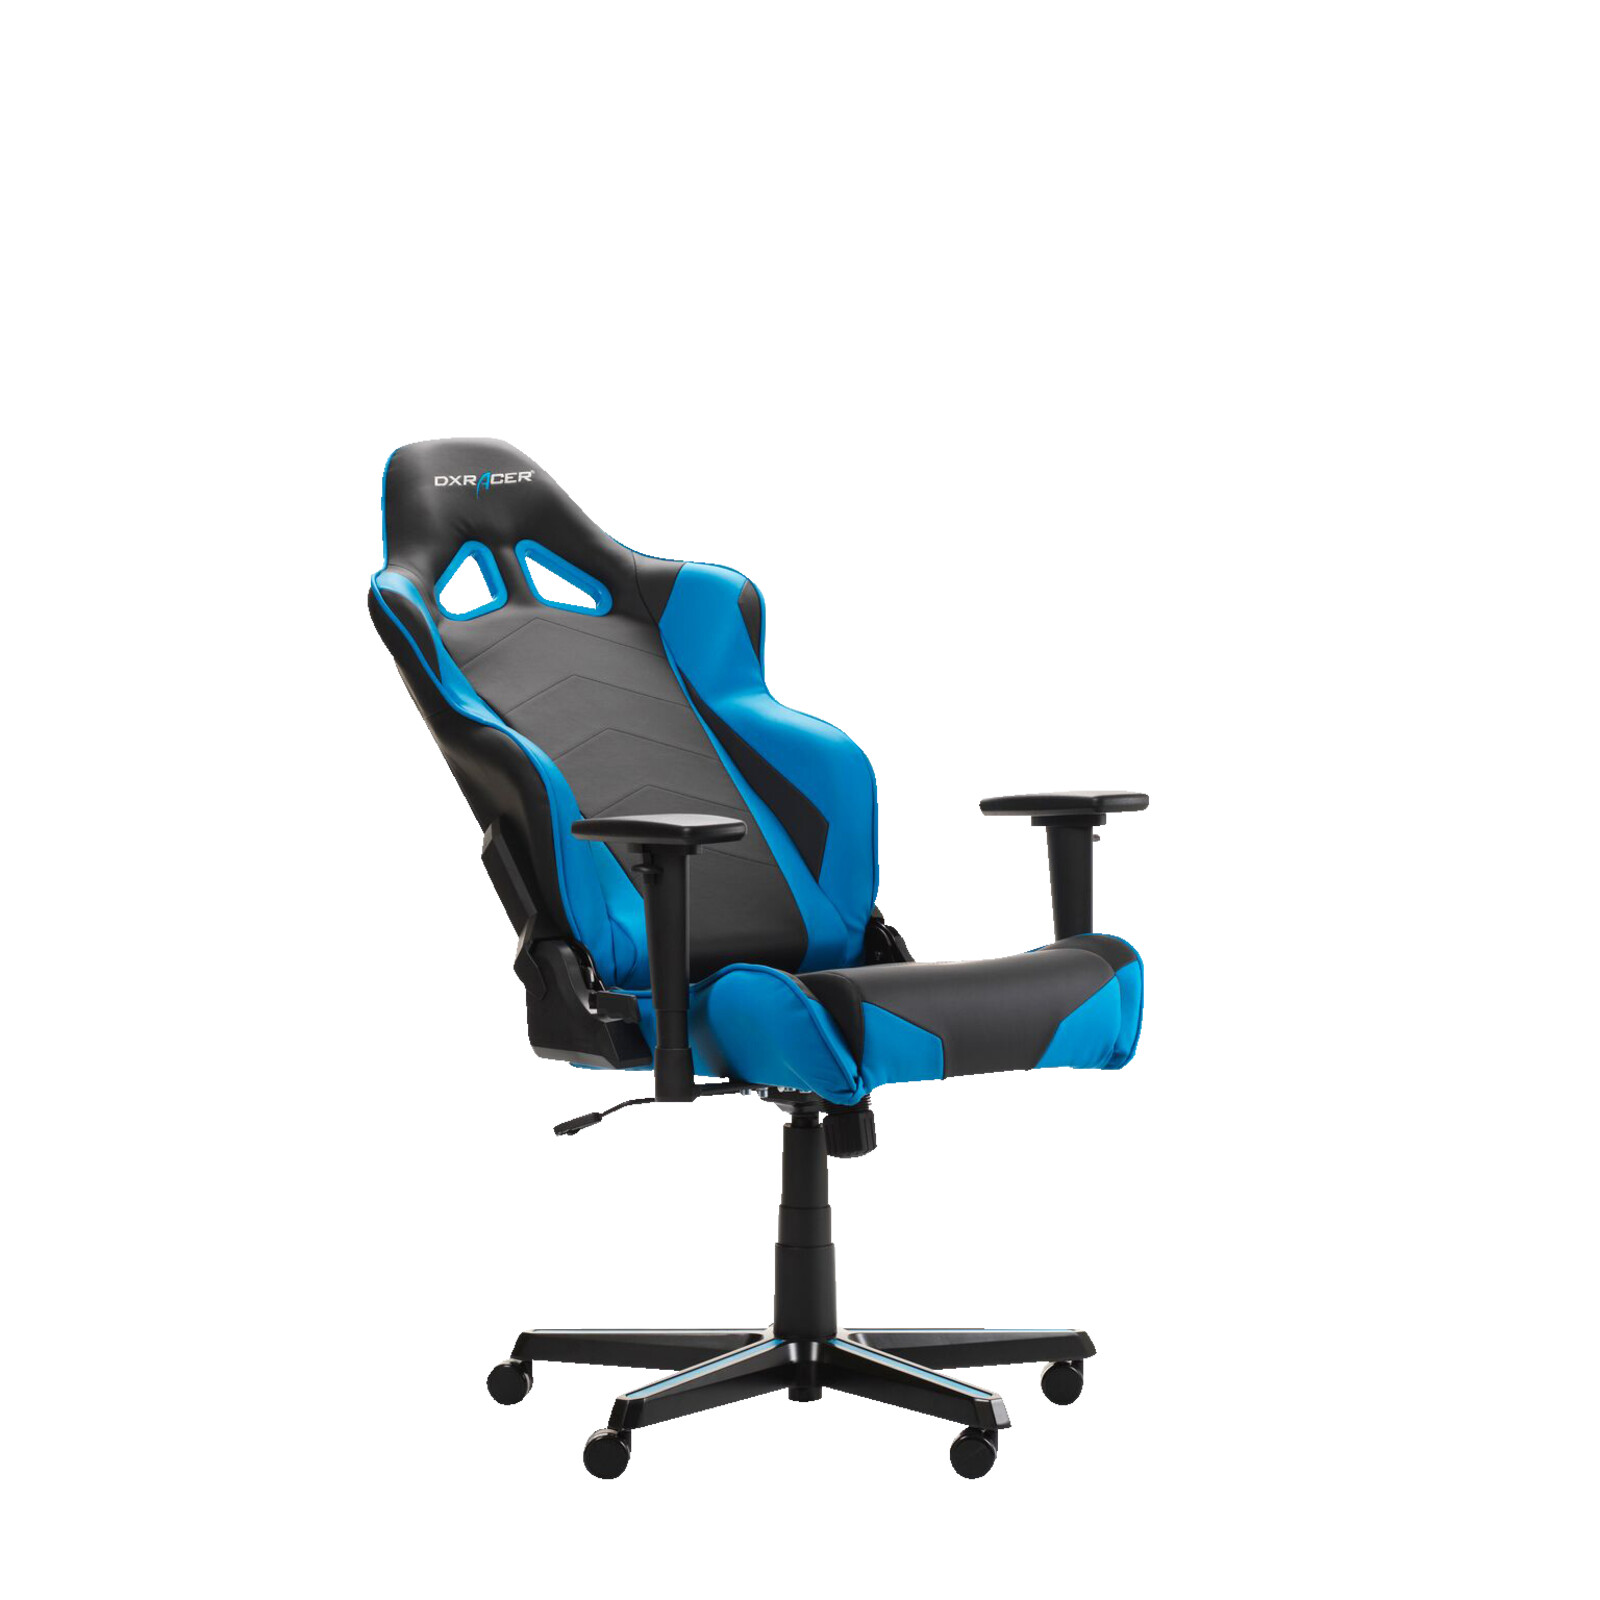 Gaming Sessel Ebay Details Zu Dxracer Racing R0 Gaming Chair Black Blue Gaming Stuhl Schwarz Blau